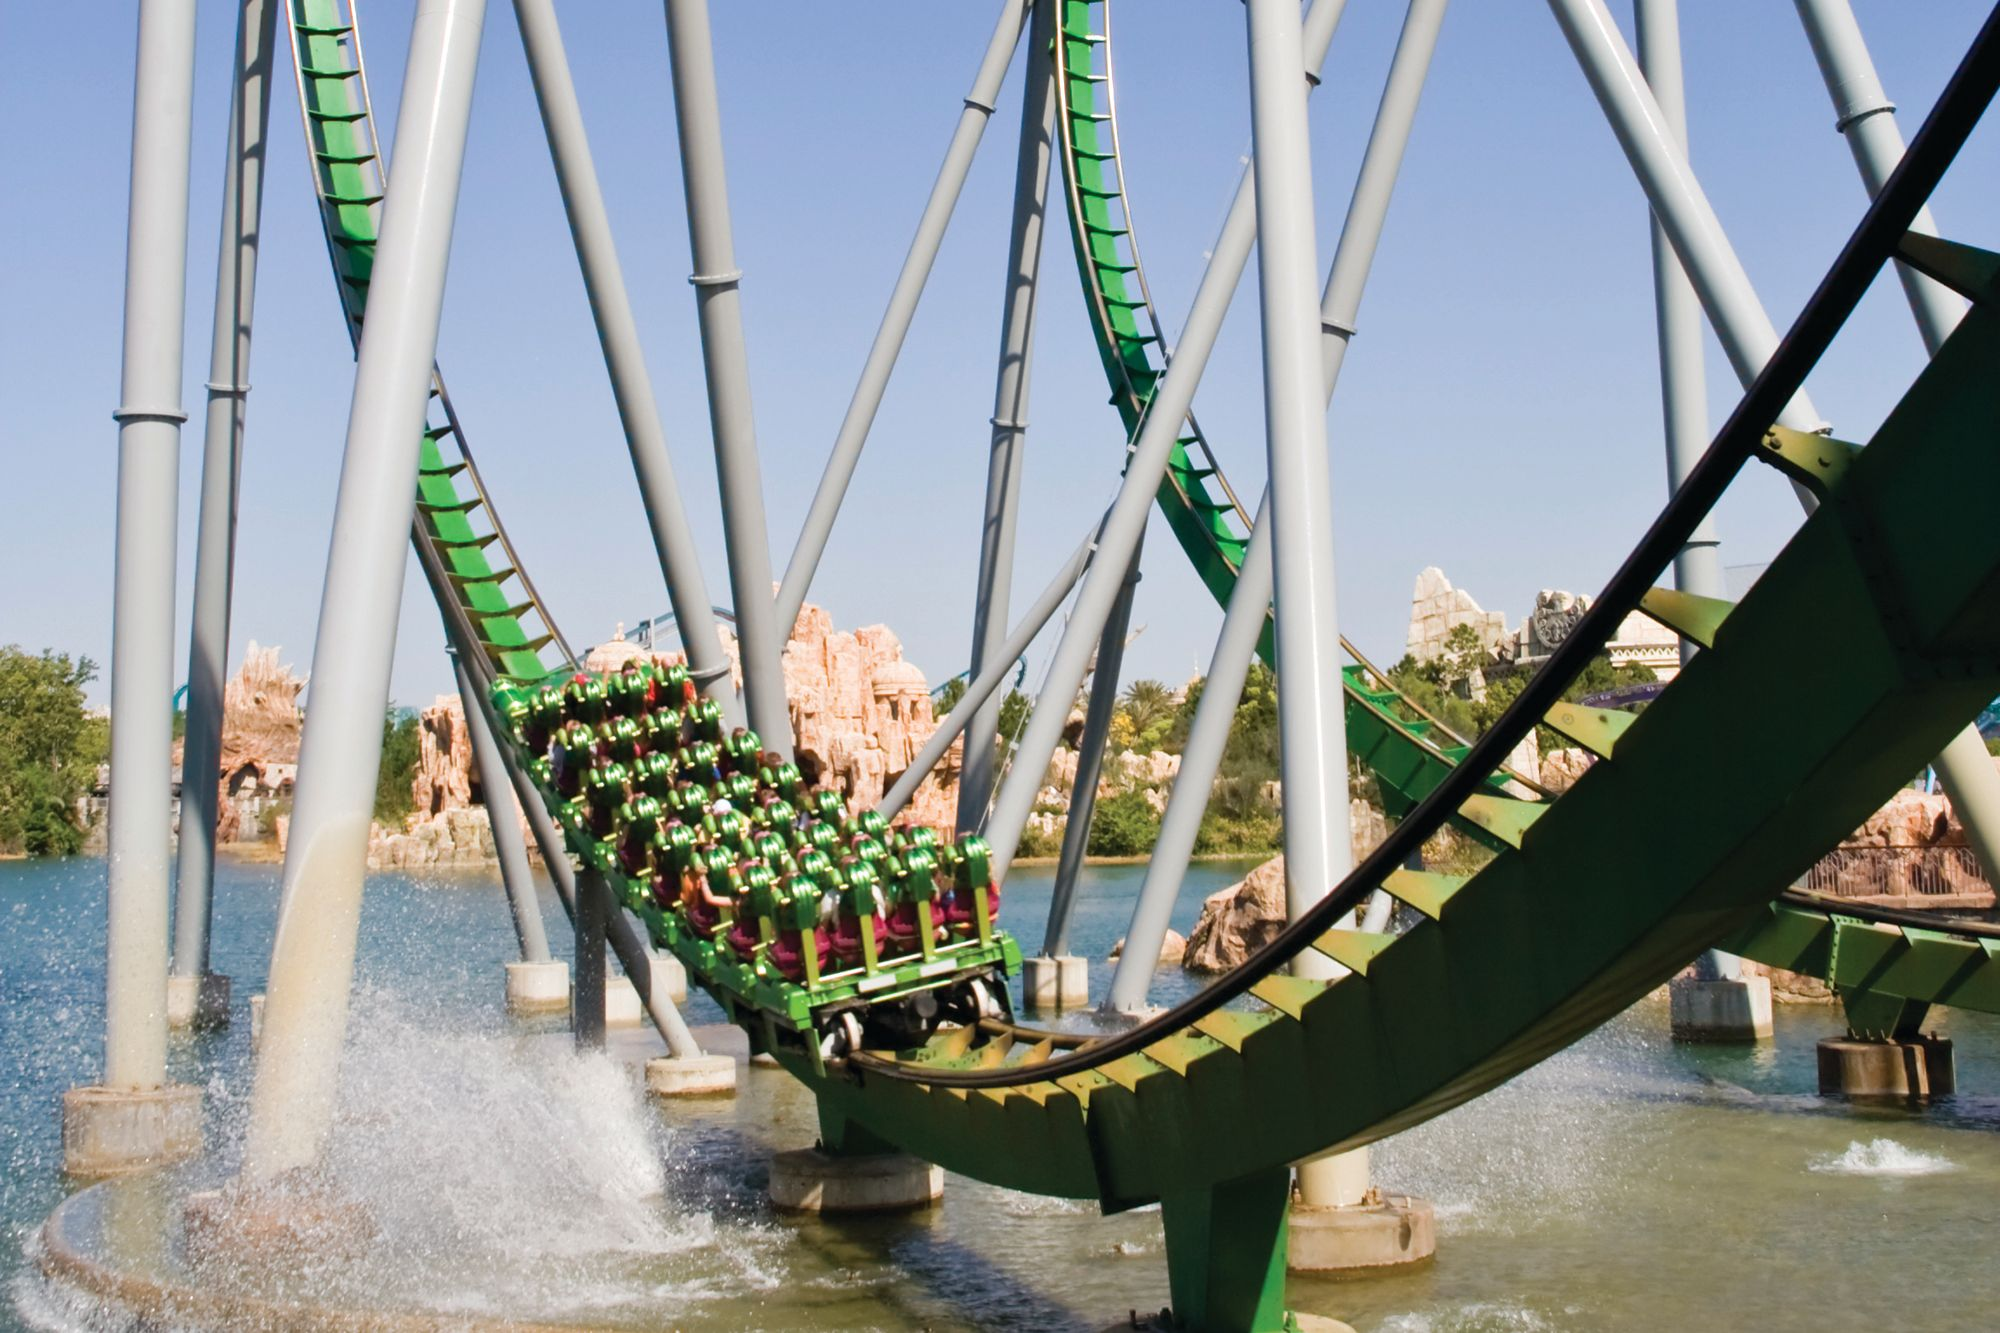 The Hulk rollercoaster at Universal's Islands of Adventure